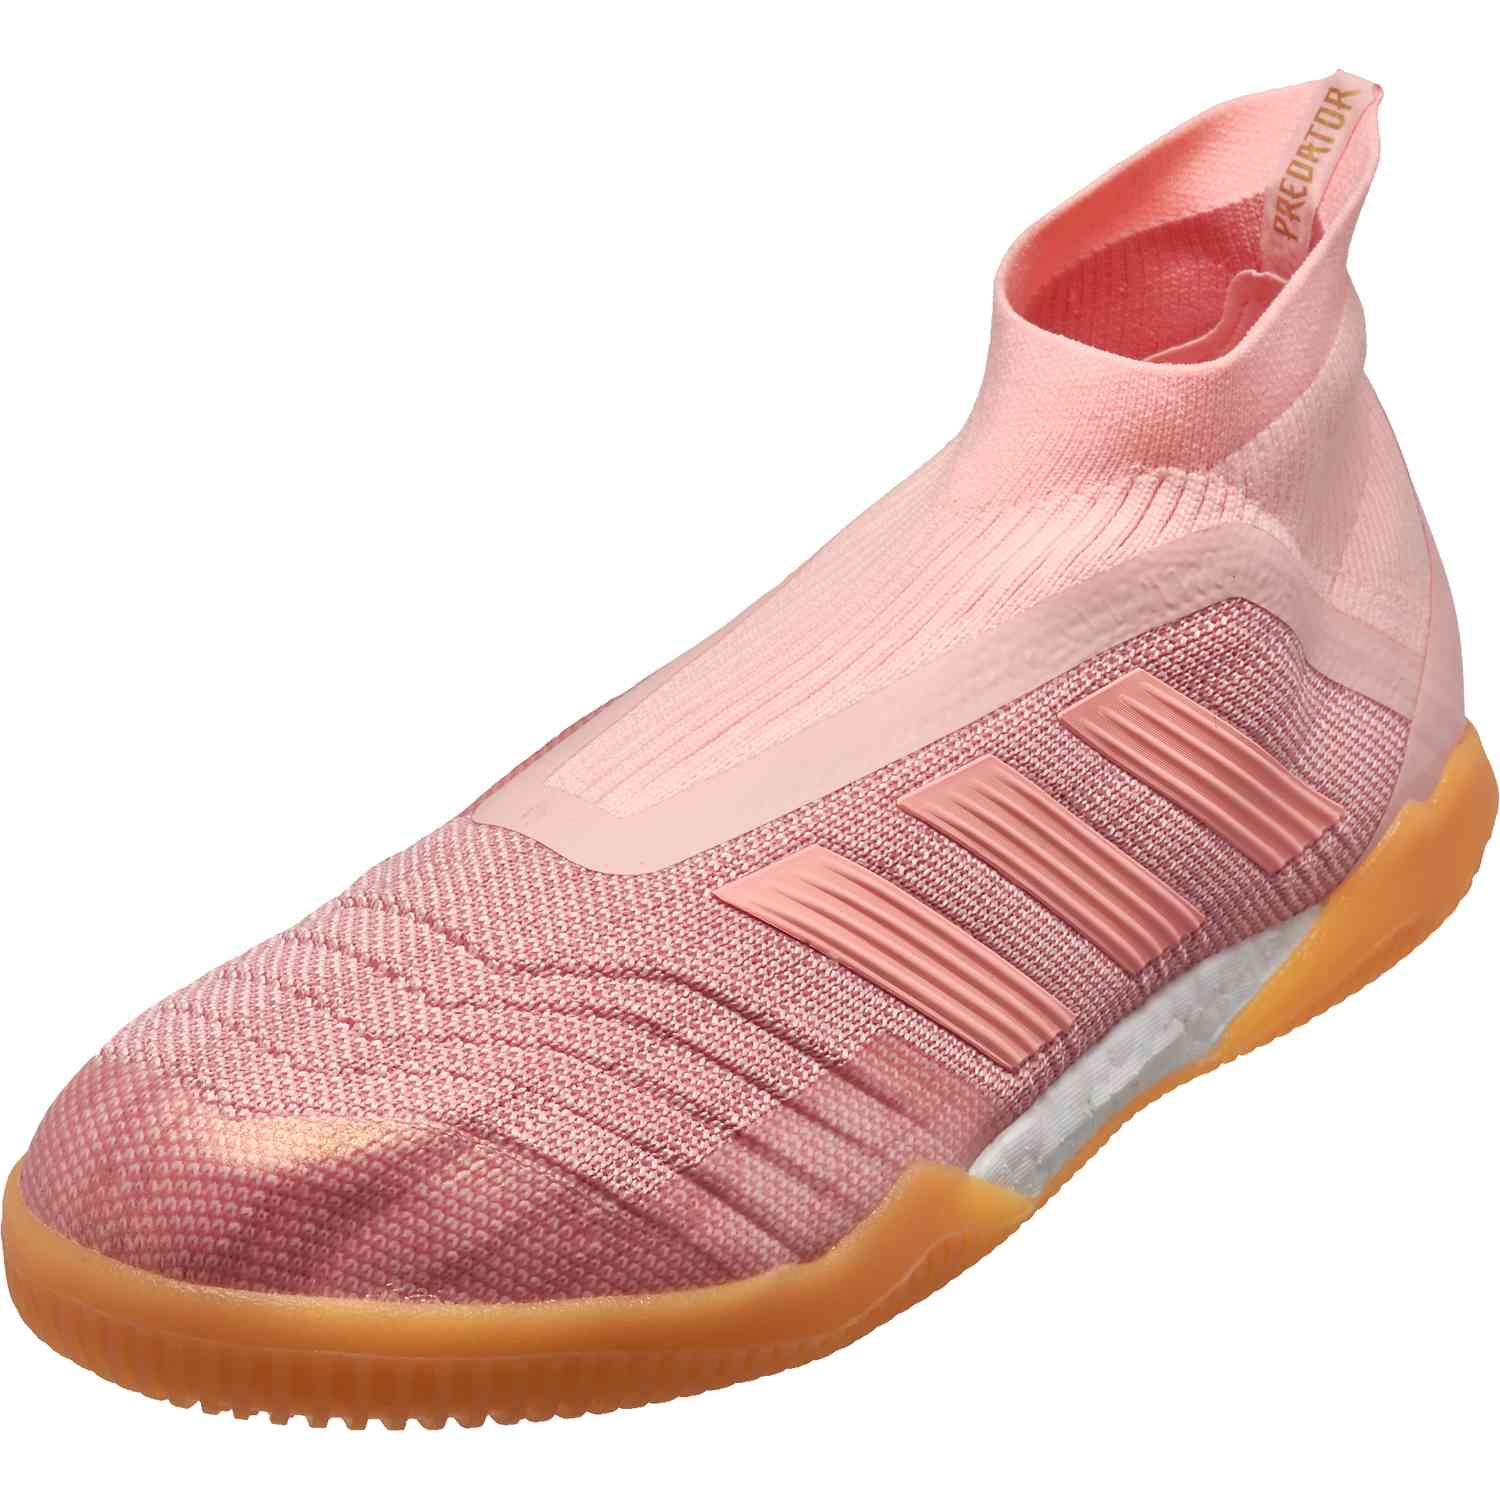 speical offer arrives new cheap Spectral Mode Pack - adidas Predator Tango 18+ IN - SoccerPro